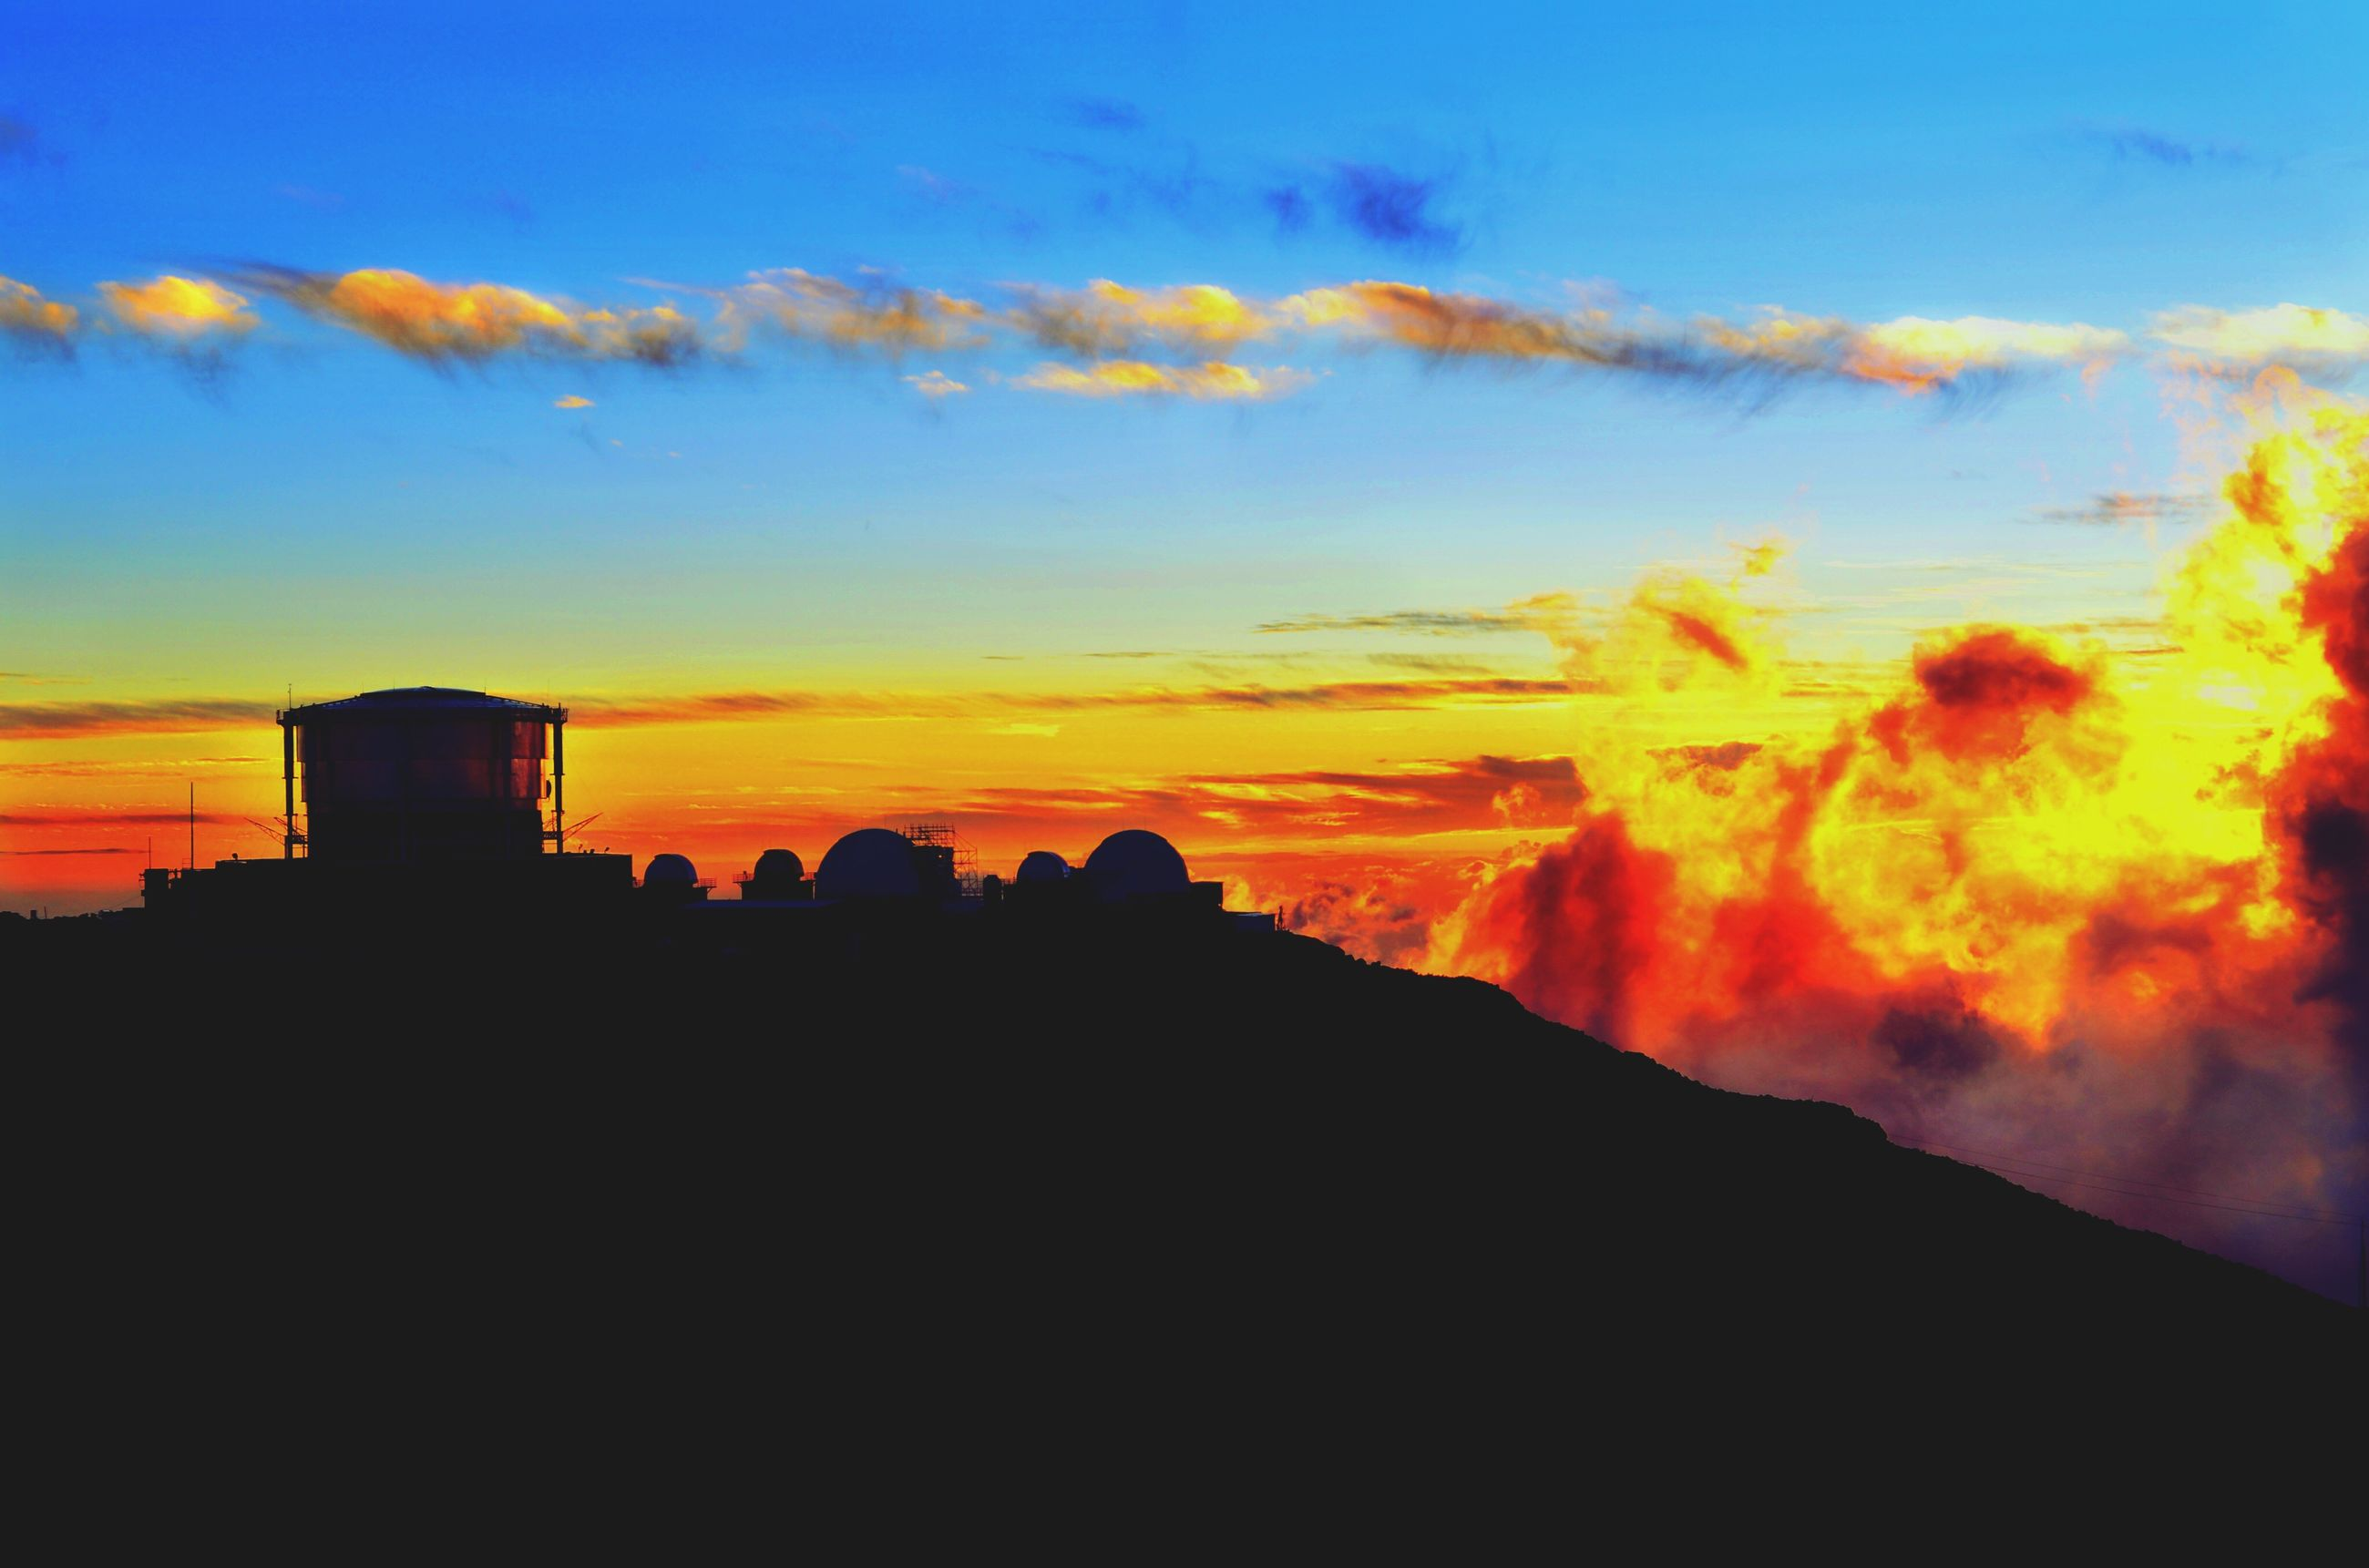 sunset, sky, nature, beauty in nature, silhouette, built structure, architecture, outdoors, scenics, no people, day